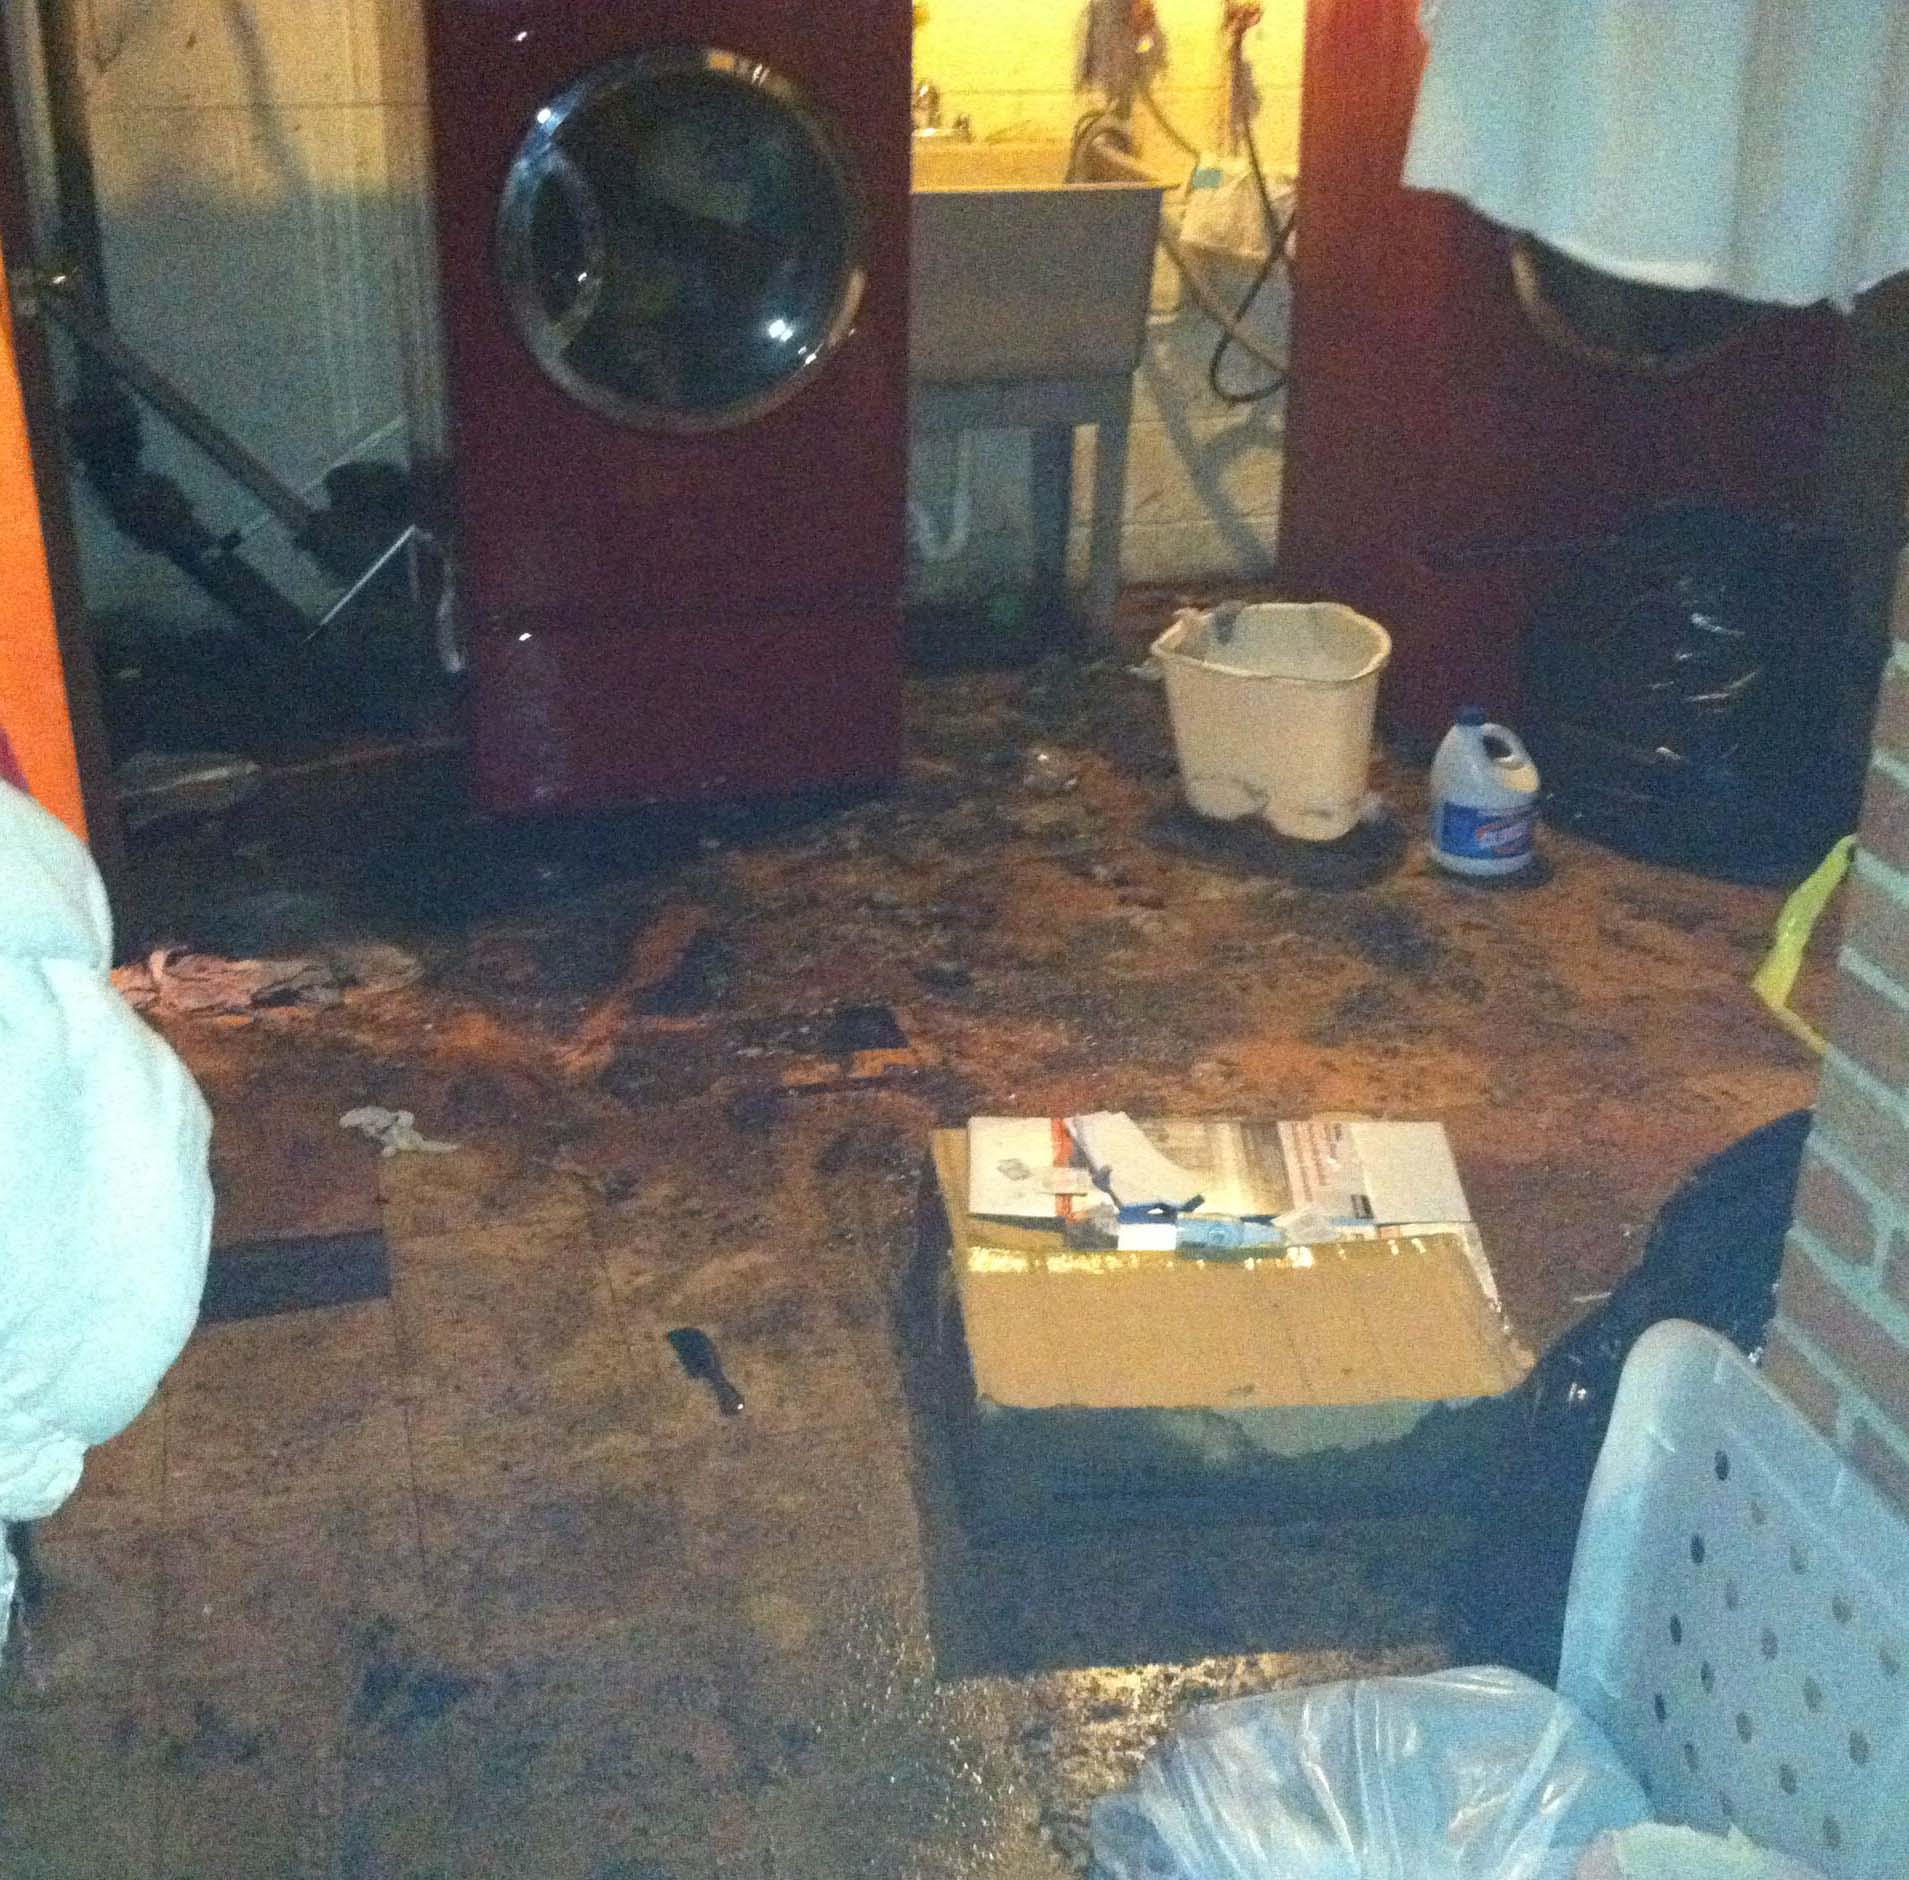 discovering your basement has just flooded from a sewer backup can be